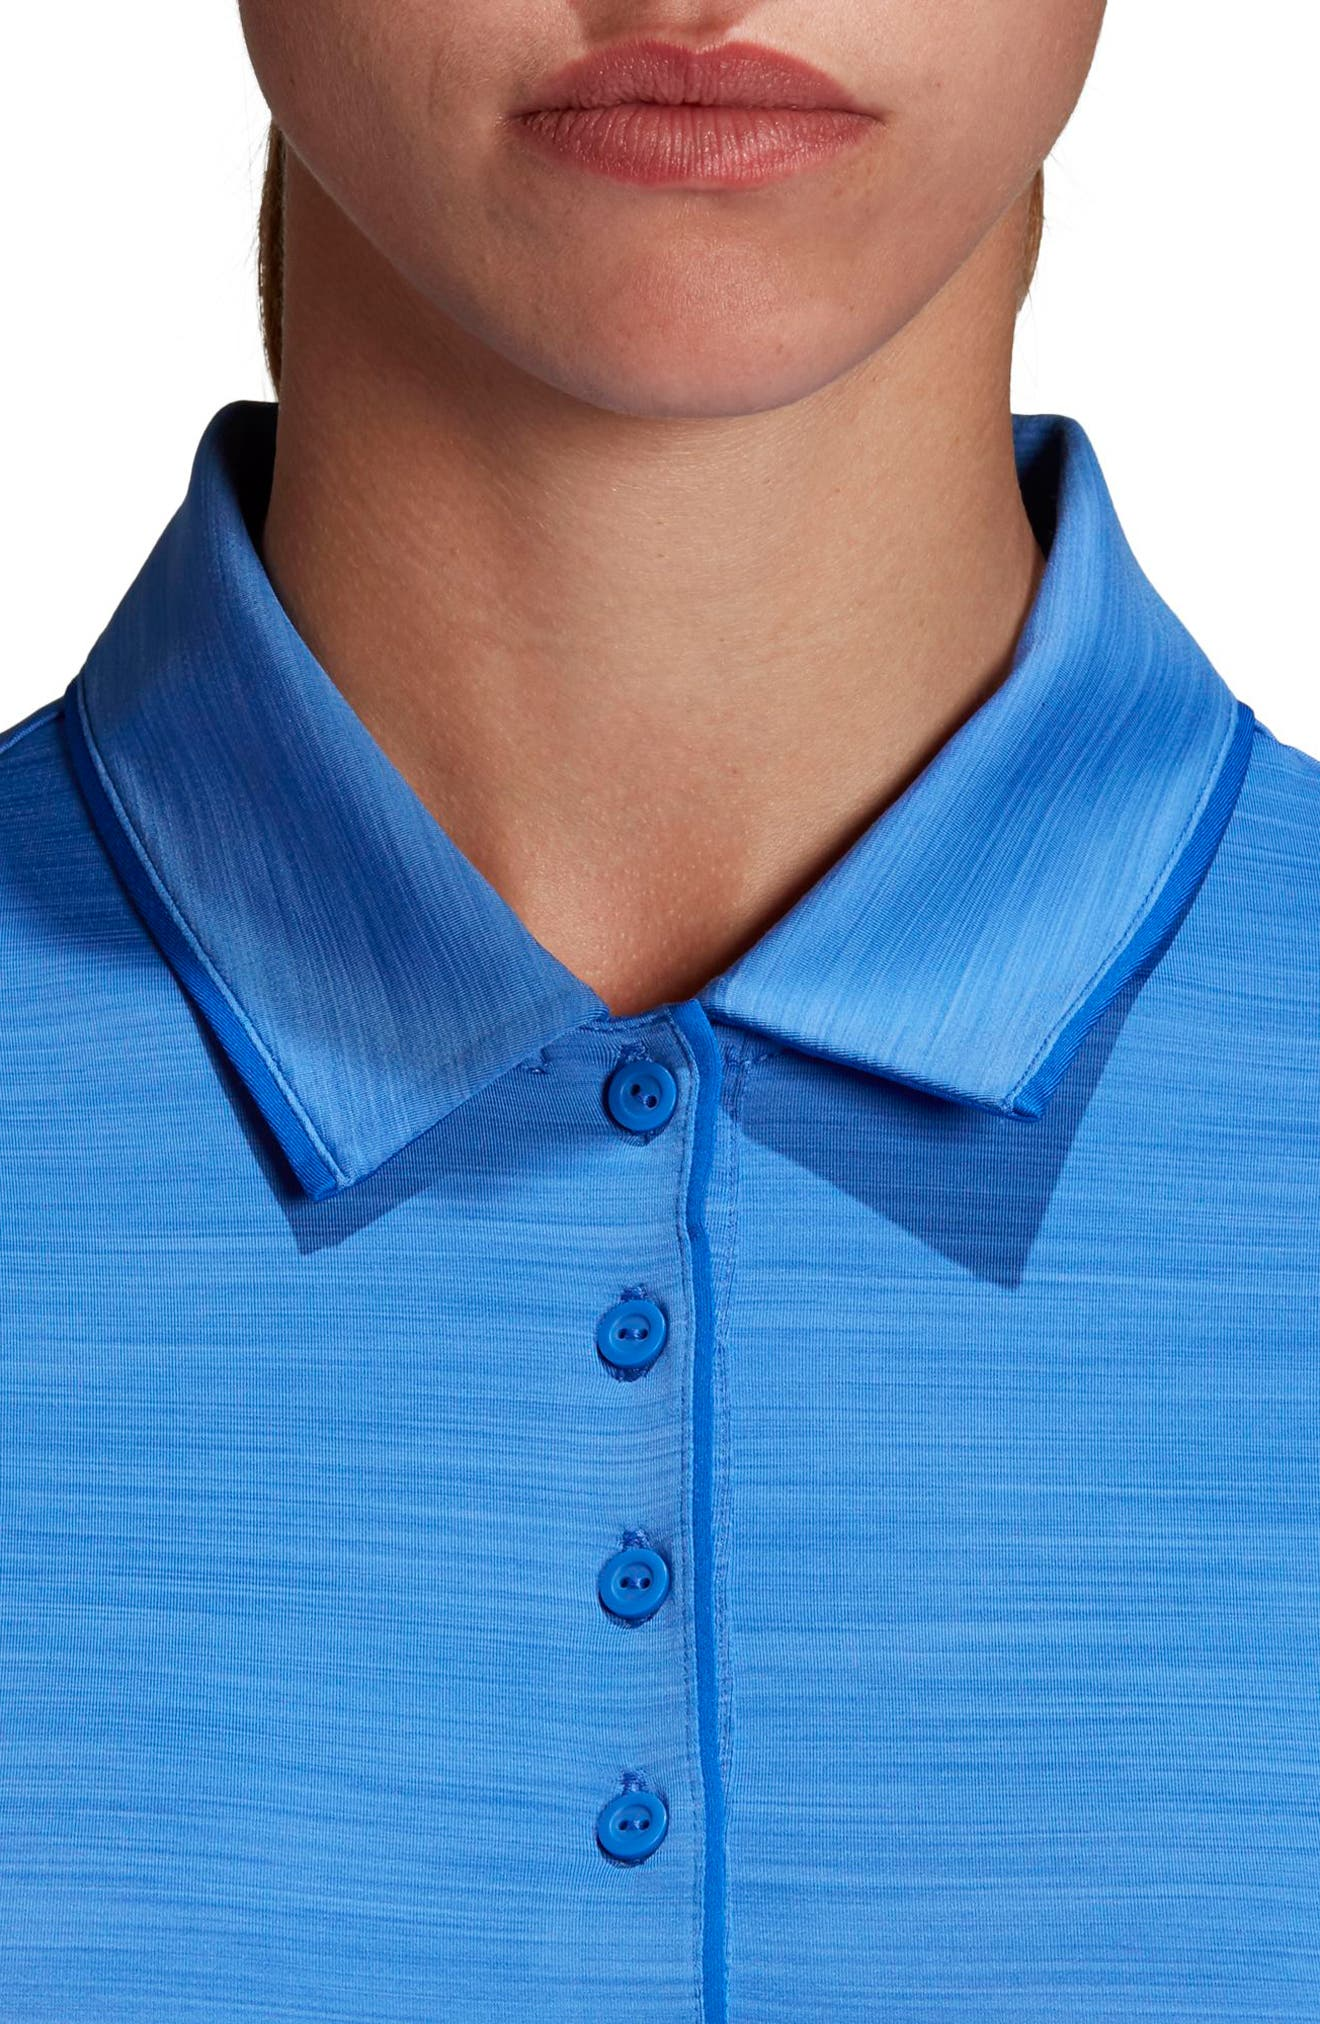 Ultimate365 Sleeveless Golf Polo,                             Alternate thumbnail 7, color,                             456